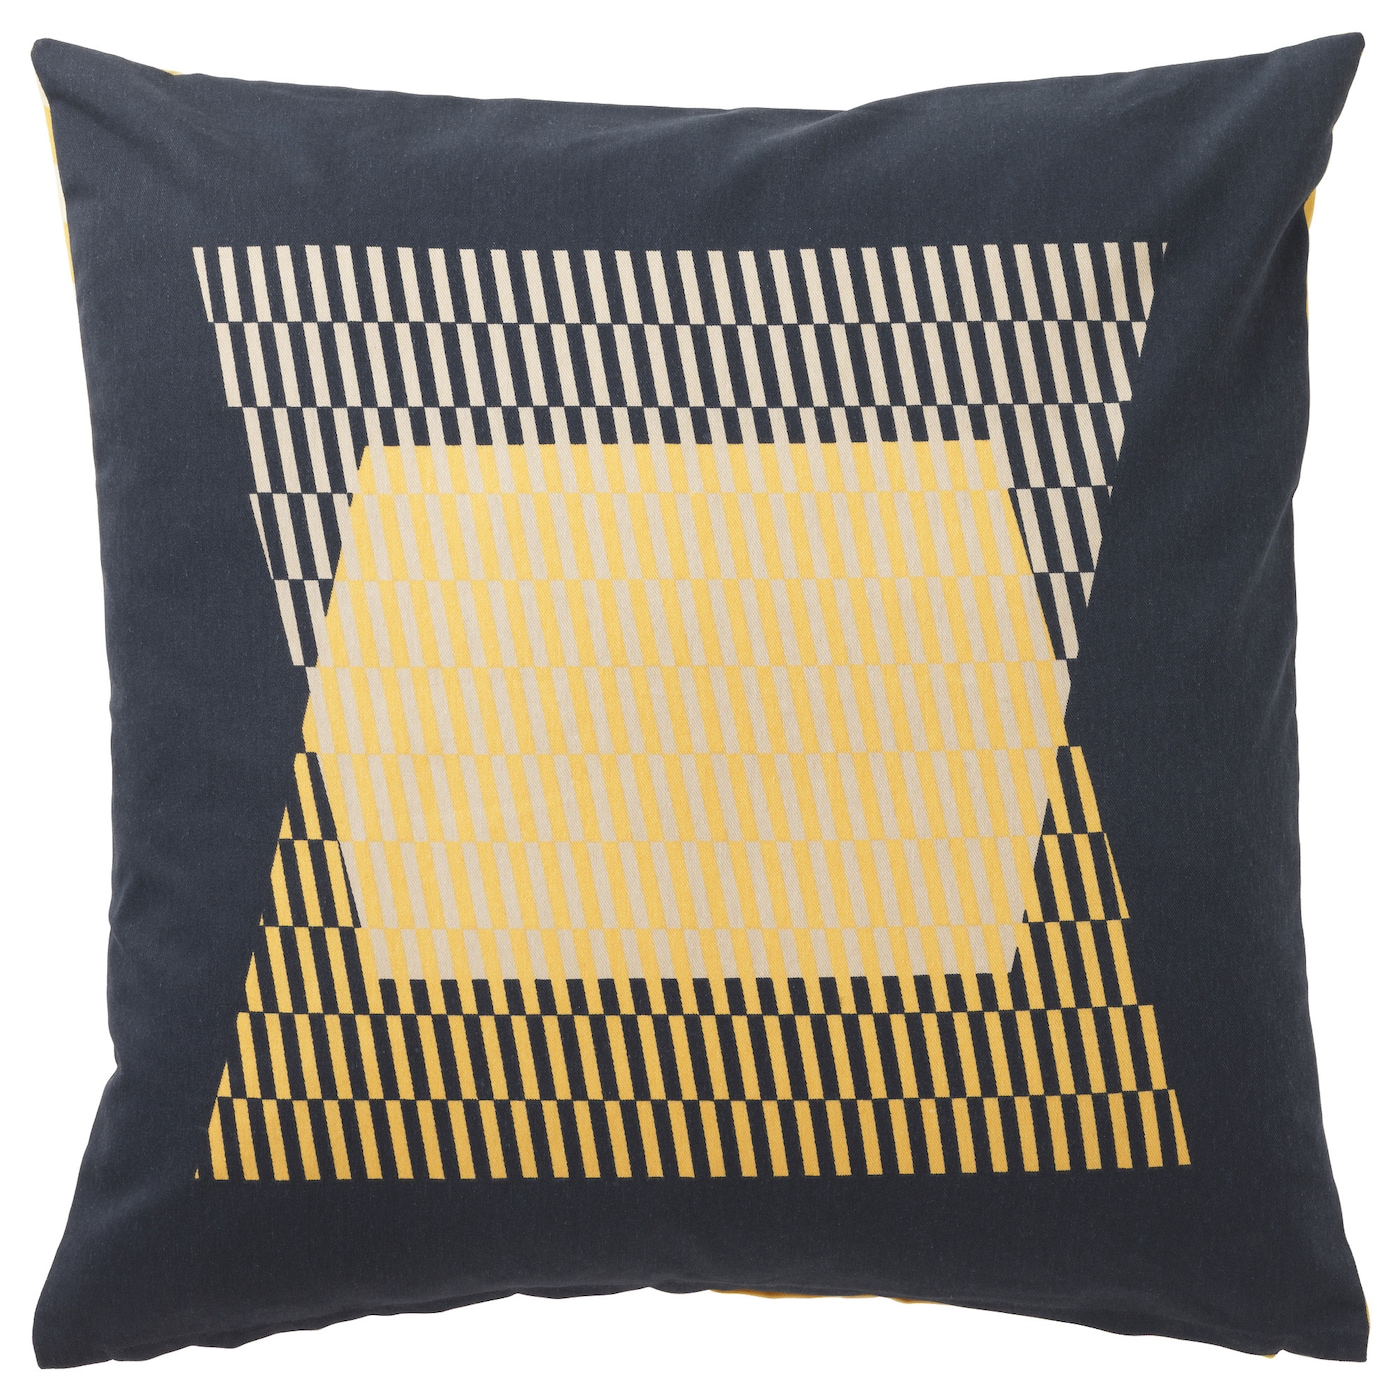 KLIPP–RT Cushion cover Yellow black 50x50 cm IKEA